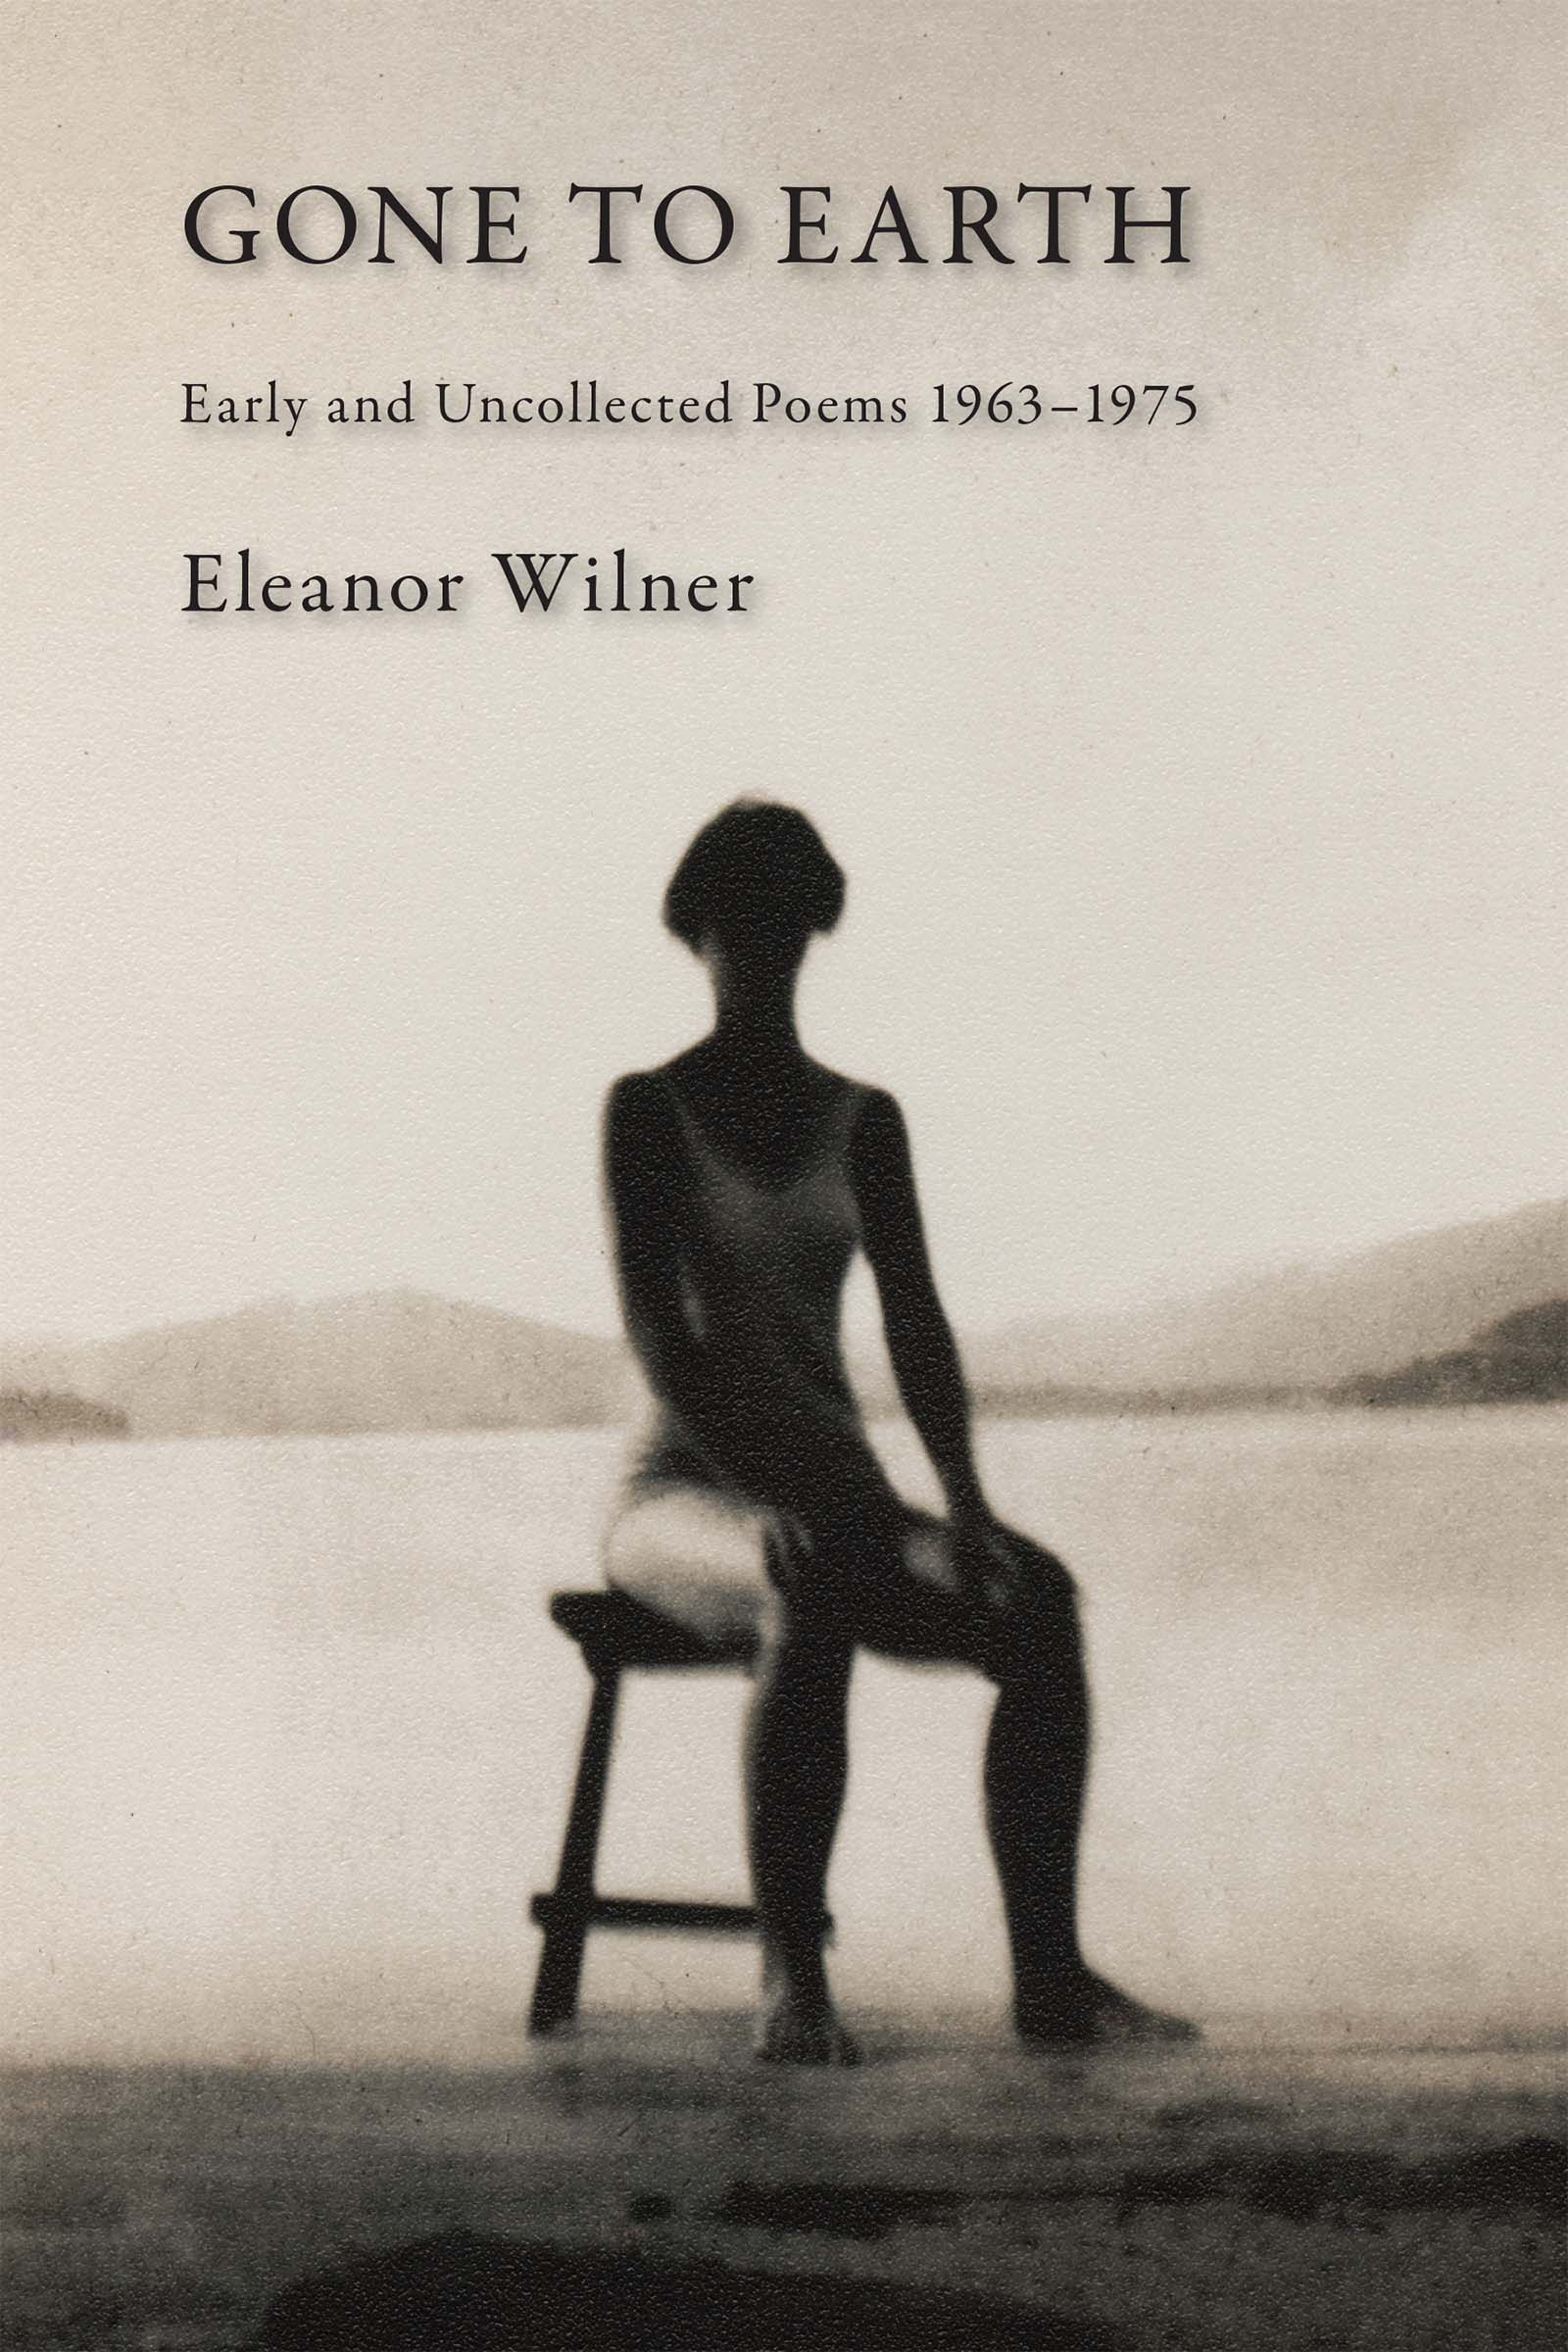 A black and white painting of a woman sitting in a chair in front of a lake with black script that reads Gone to Earth early and uncollected poems 1963-1975 by Eleanor Wilner.